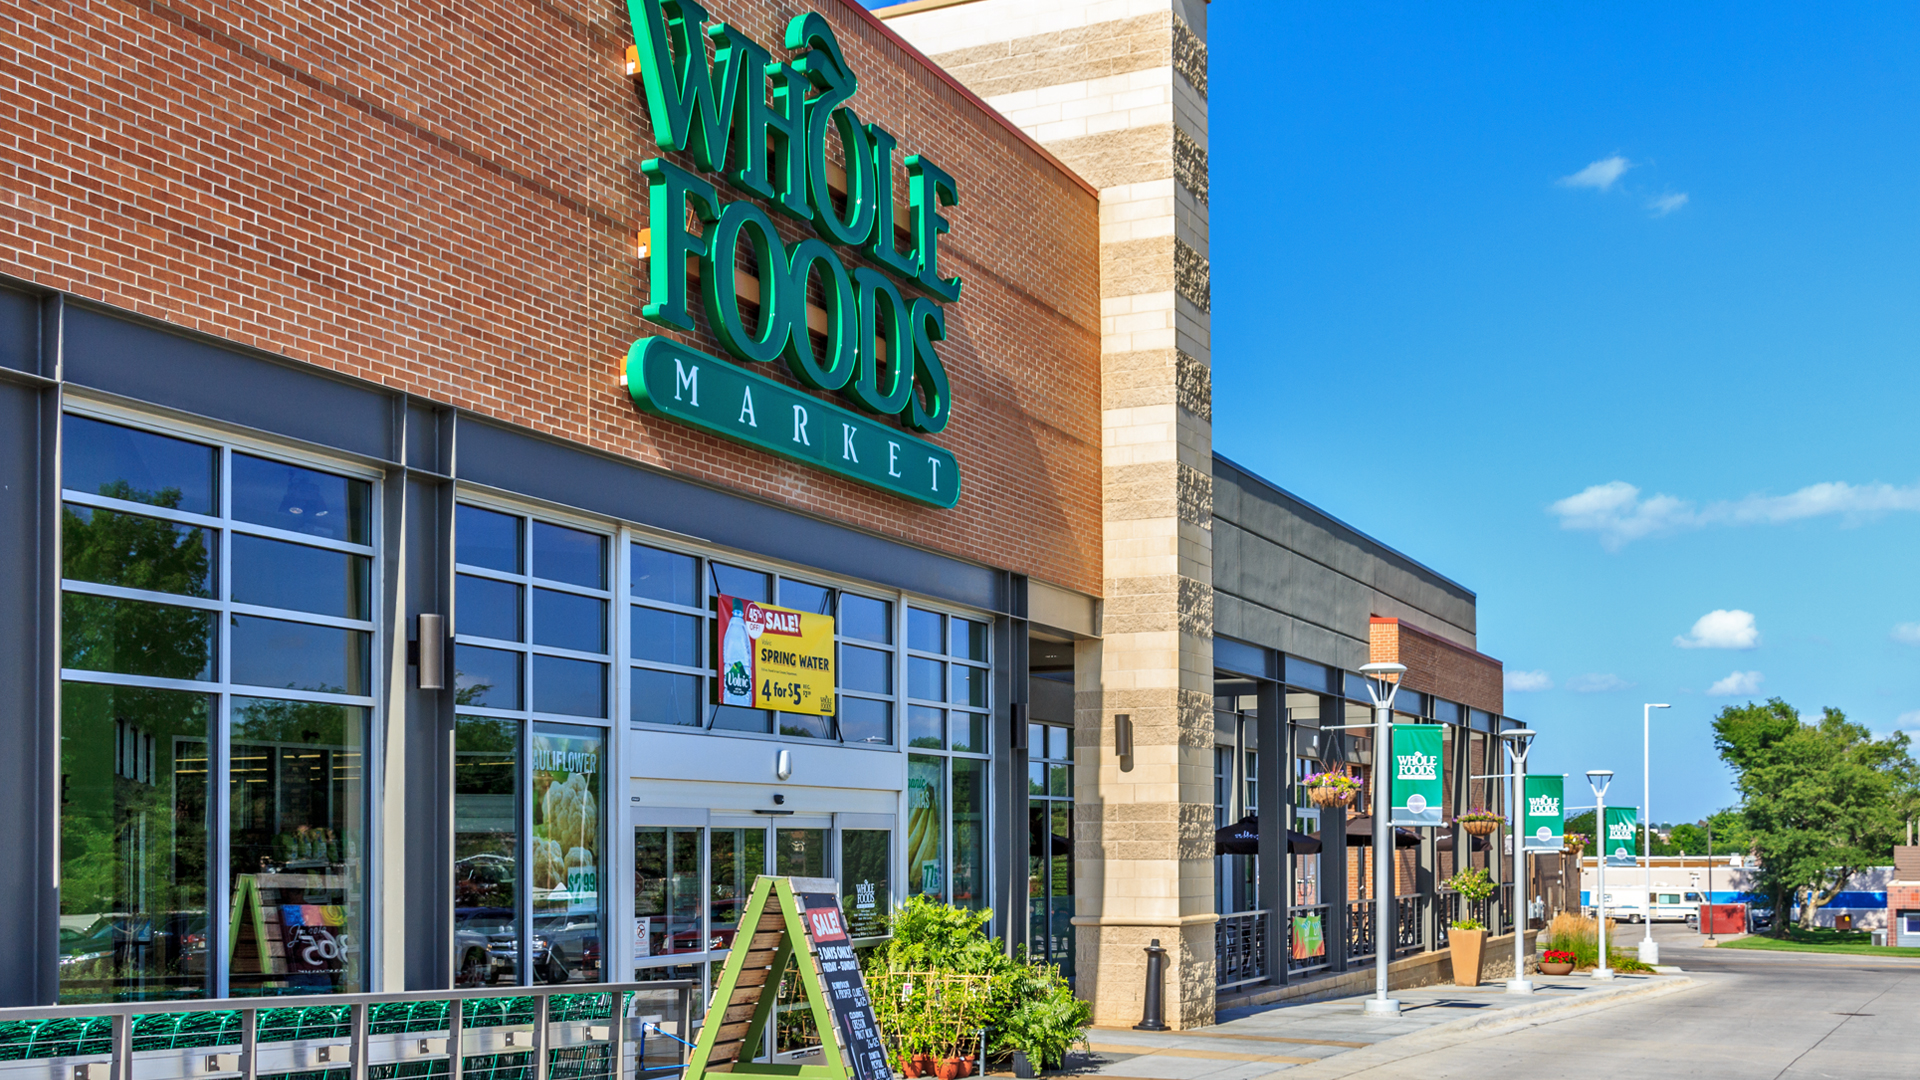 <p>Continuum brought in Lincoln's first Whole Foods Market to serve as the 30,000 square-foot high-end market anchor tenant.</p>